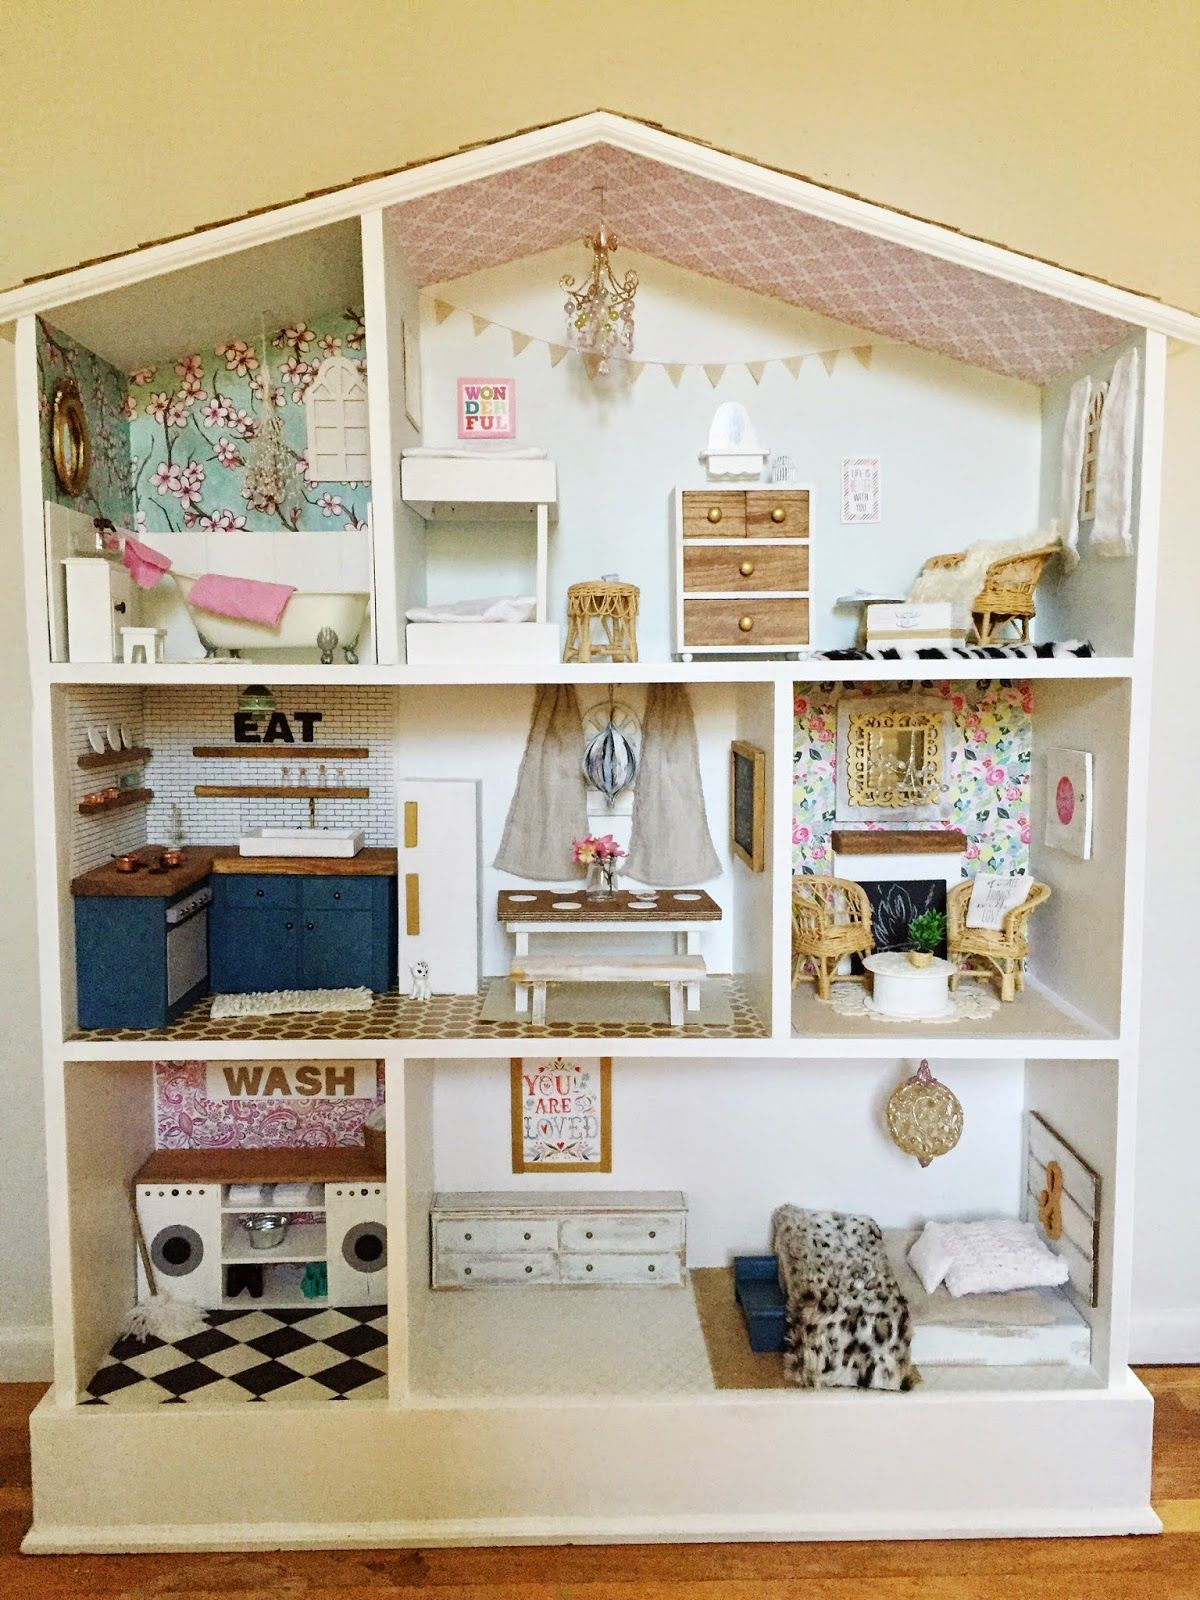 Design Homemade Doll Houses caught in grace barbie dollhouse diy aria bday xmas diy